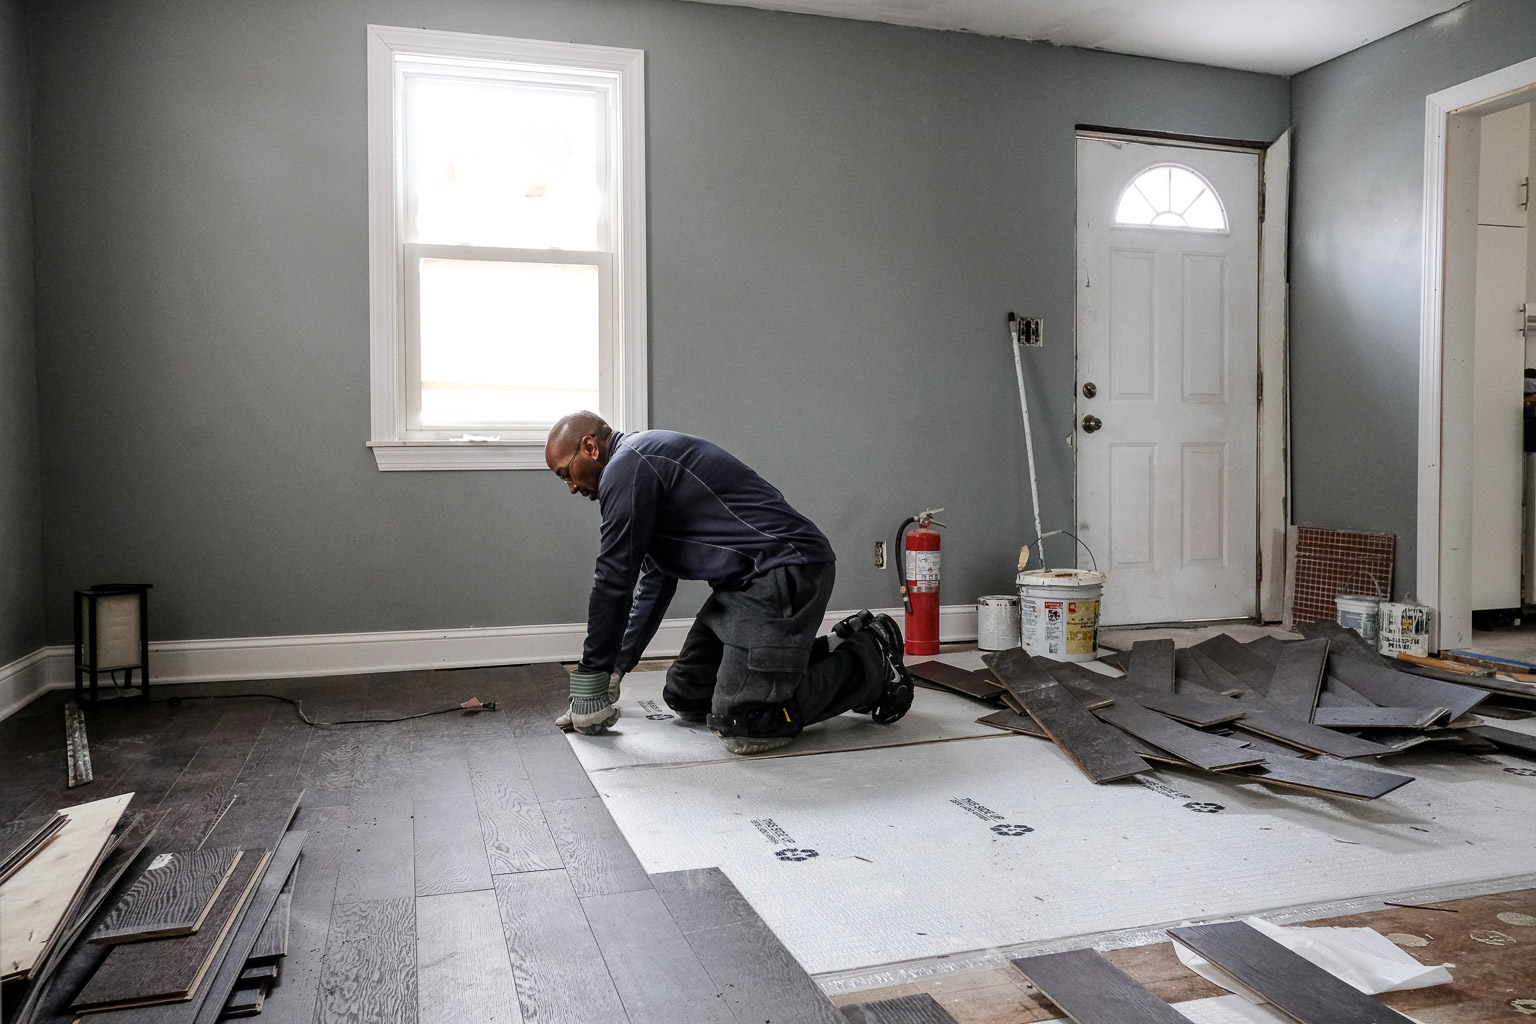 This is me uninstalling the hardwood floor after I fired the contractor I started the project with. That's a long story for another blog post. I had to remove the floor because they did such a poor job of installing it. This was the least of their shabby work that had to be redone.